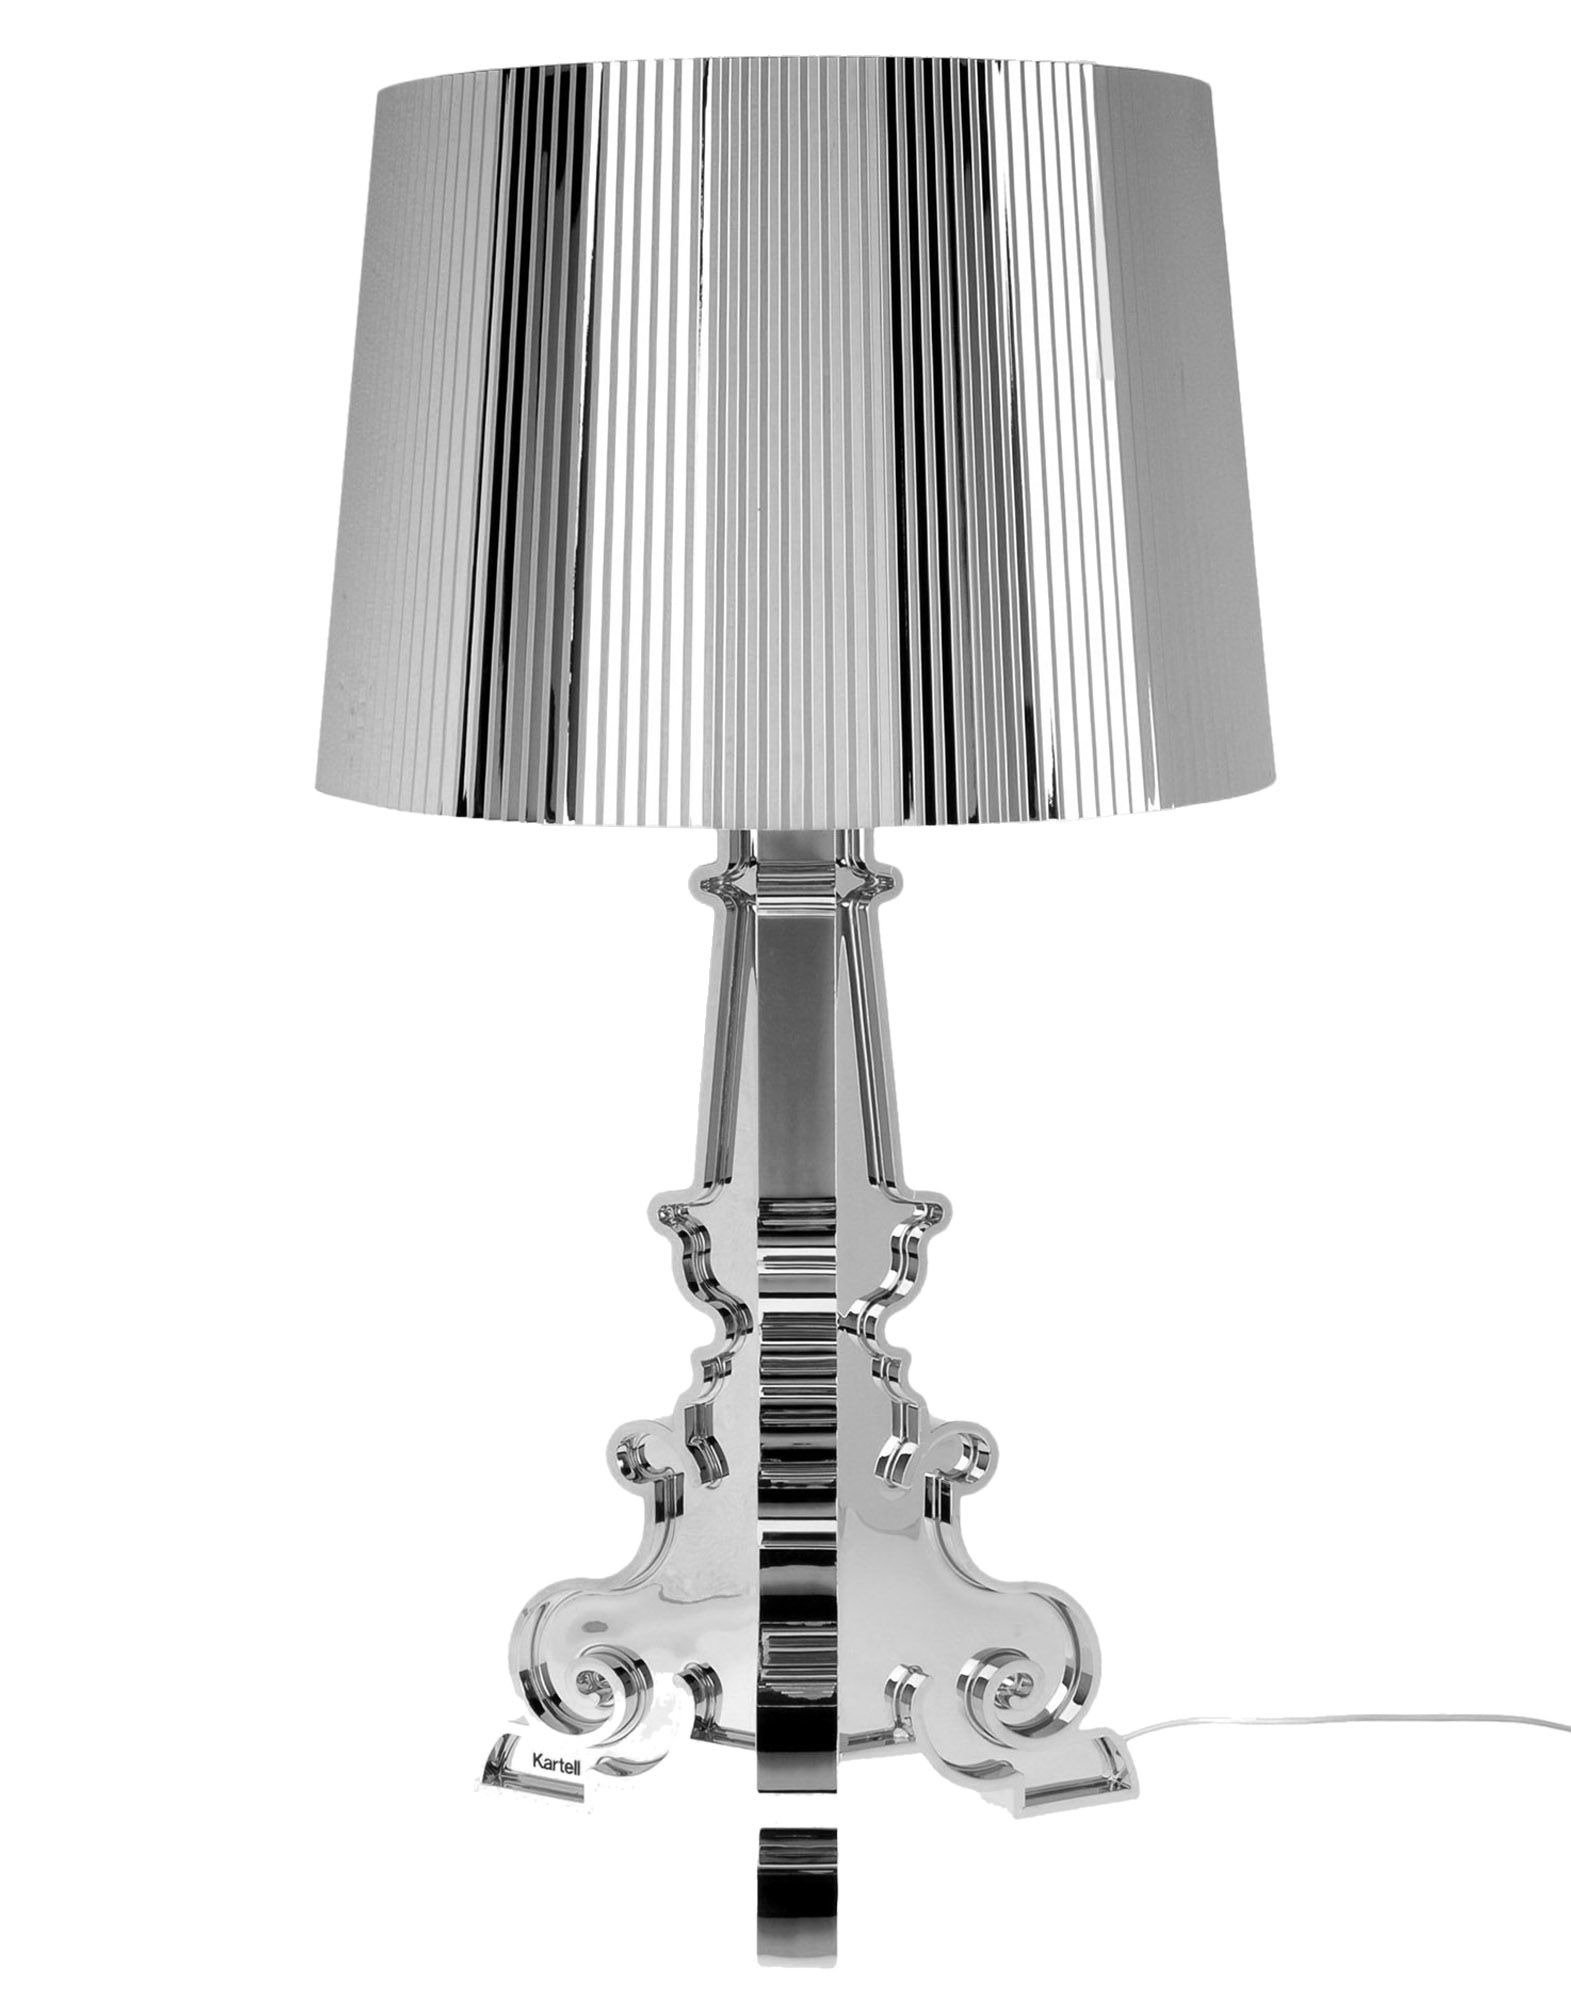 KARTELL Настольная лампа industrial country retro water pipe desk lamp american vintage table lamps led table light bulbs for sduty room fj dt1s 006a0